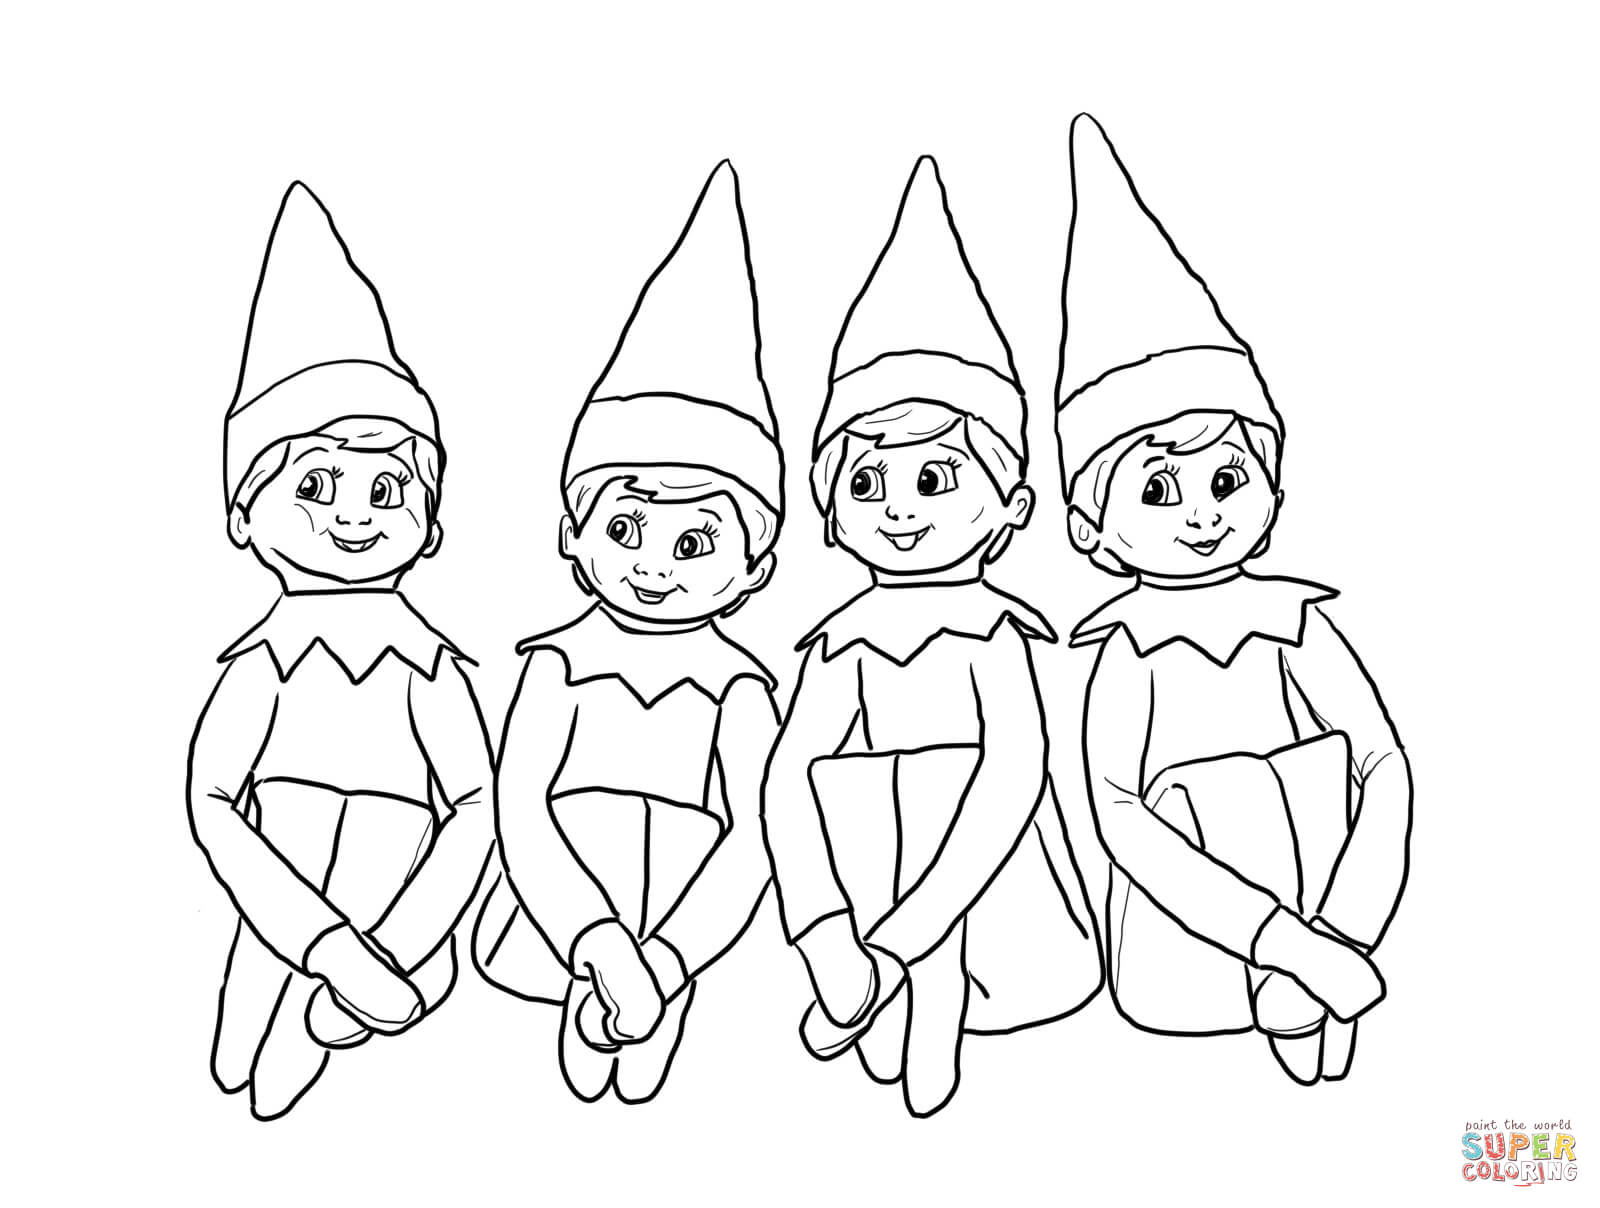 elves coloring pages to printy - photo#17